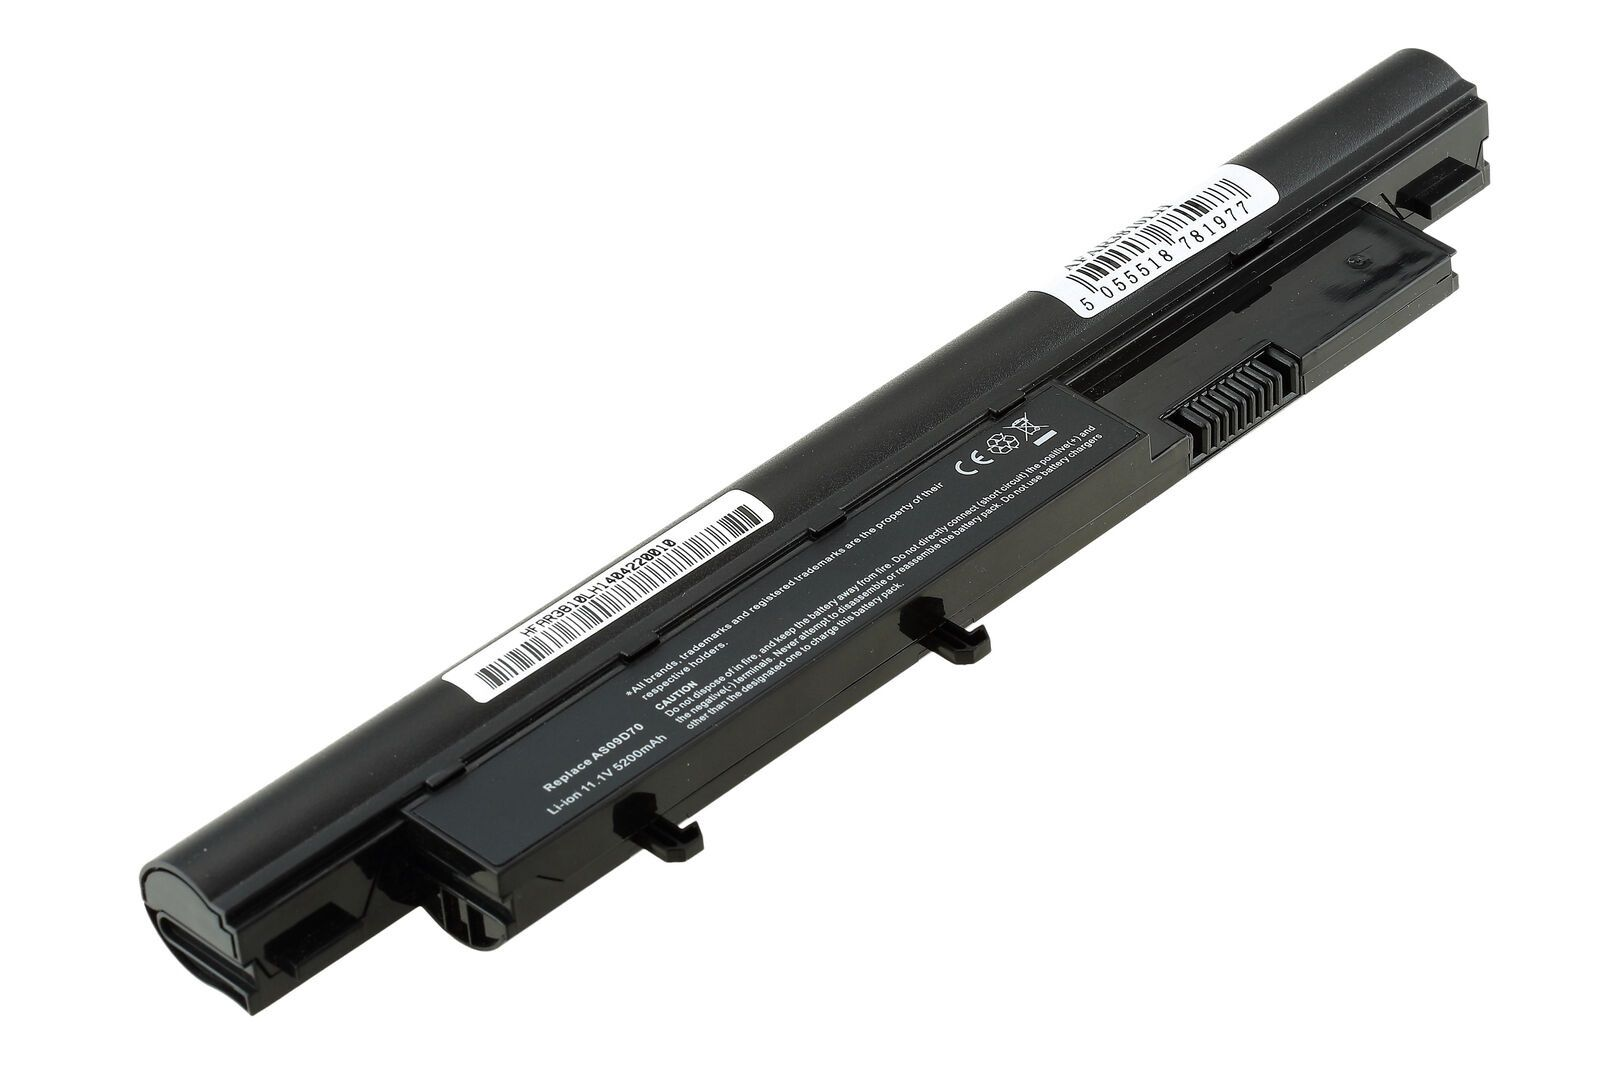 Bateria Para Acer Aspire 3810t-6415 4810T 5810T As09d31 - EASY HELP NOTE